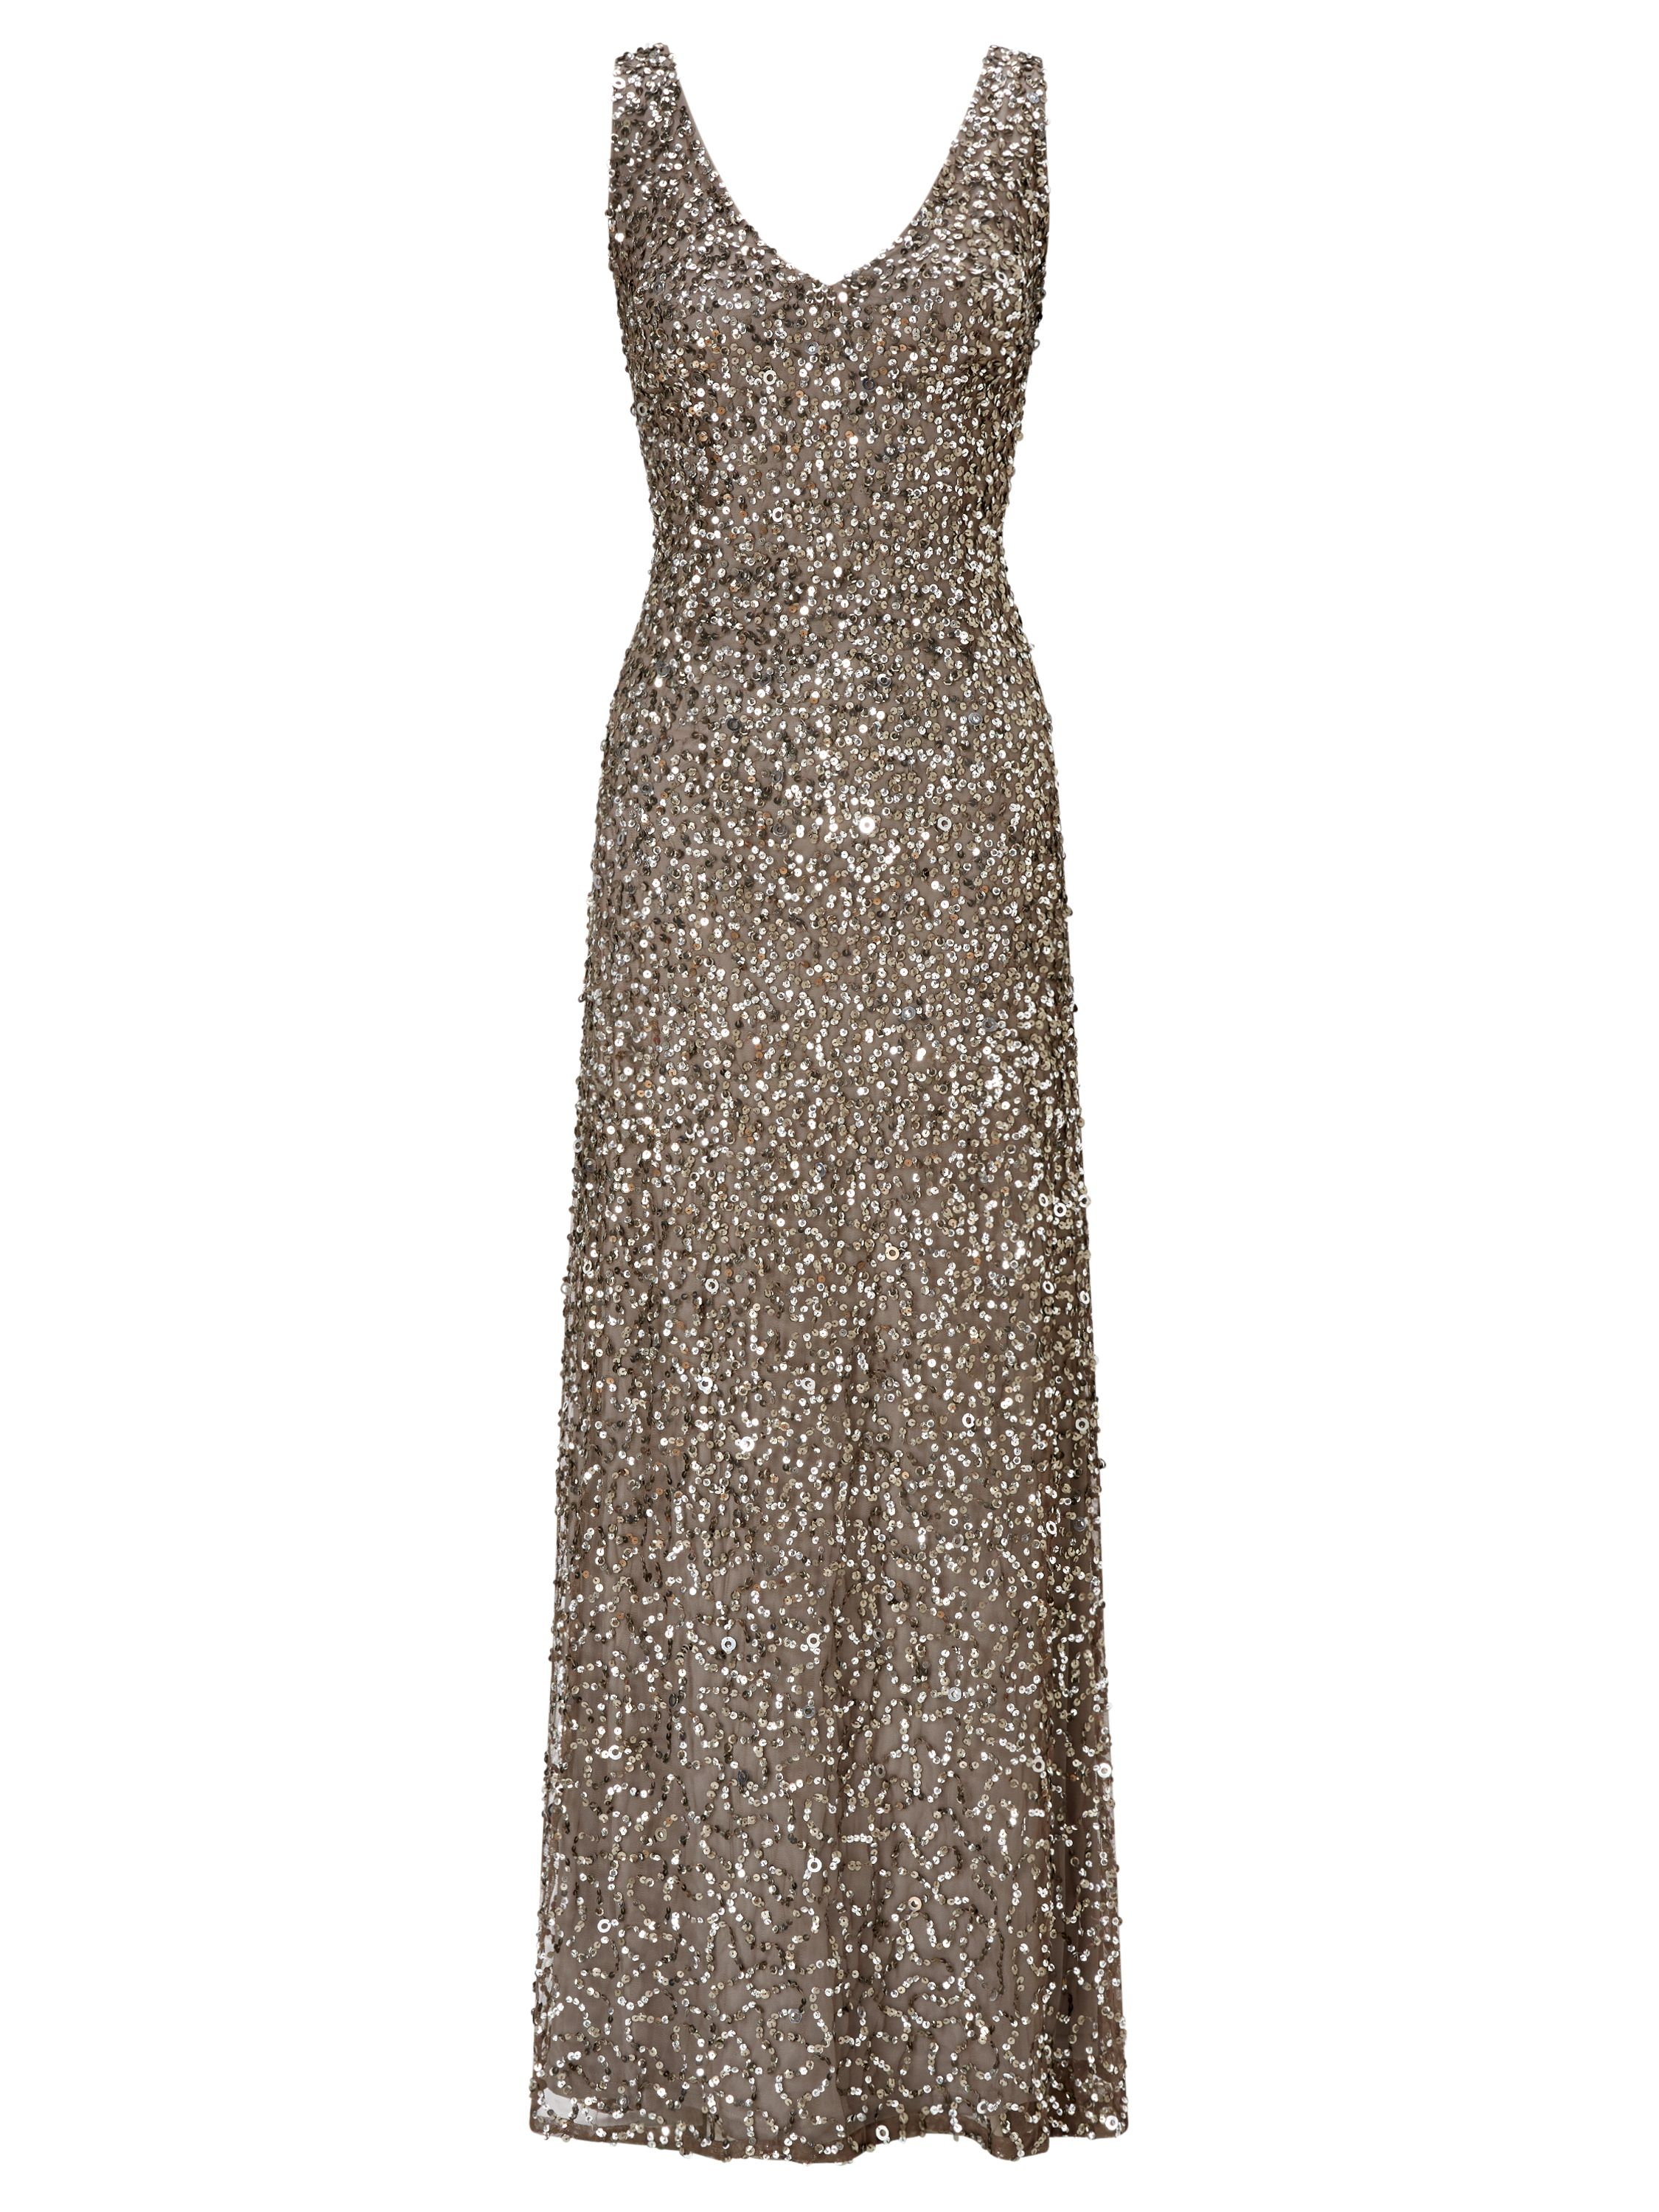 Adrianna Papell Strapless Evening Dress, Grey